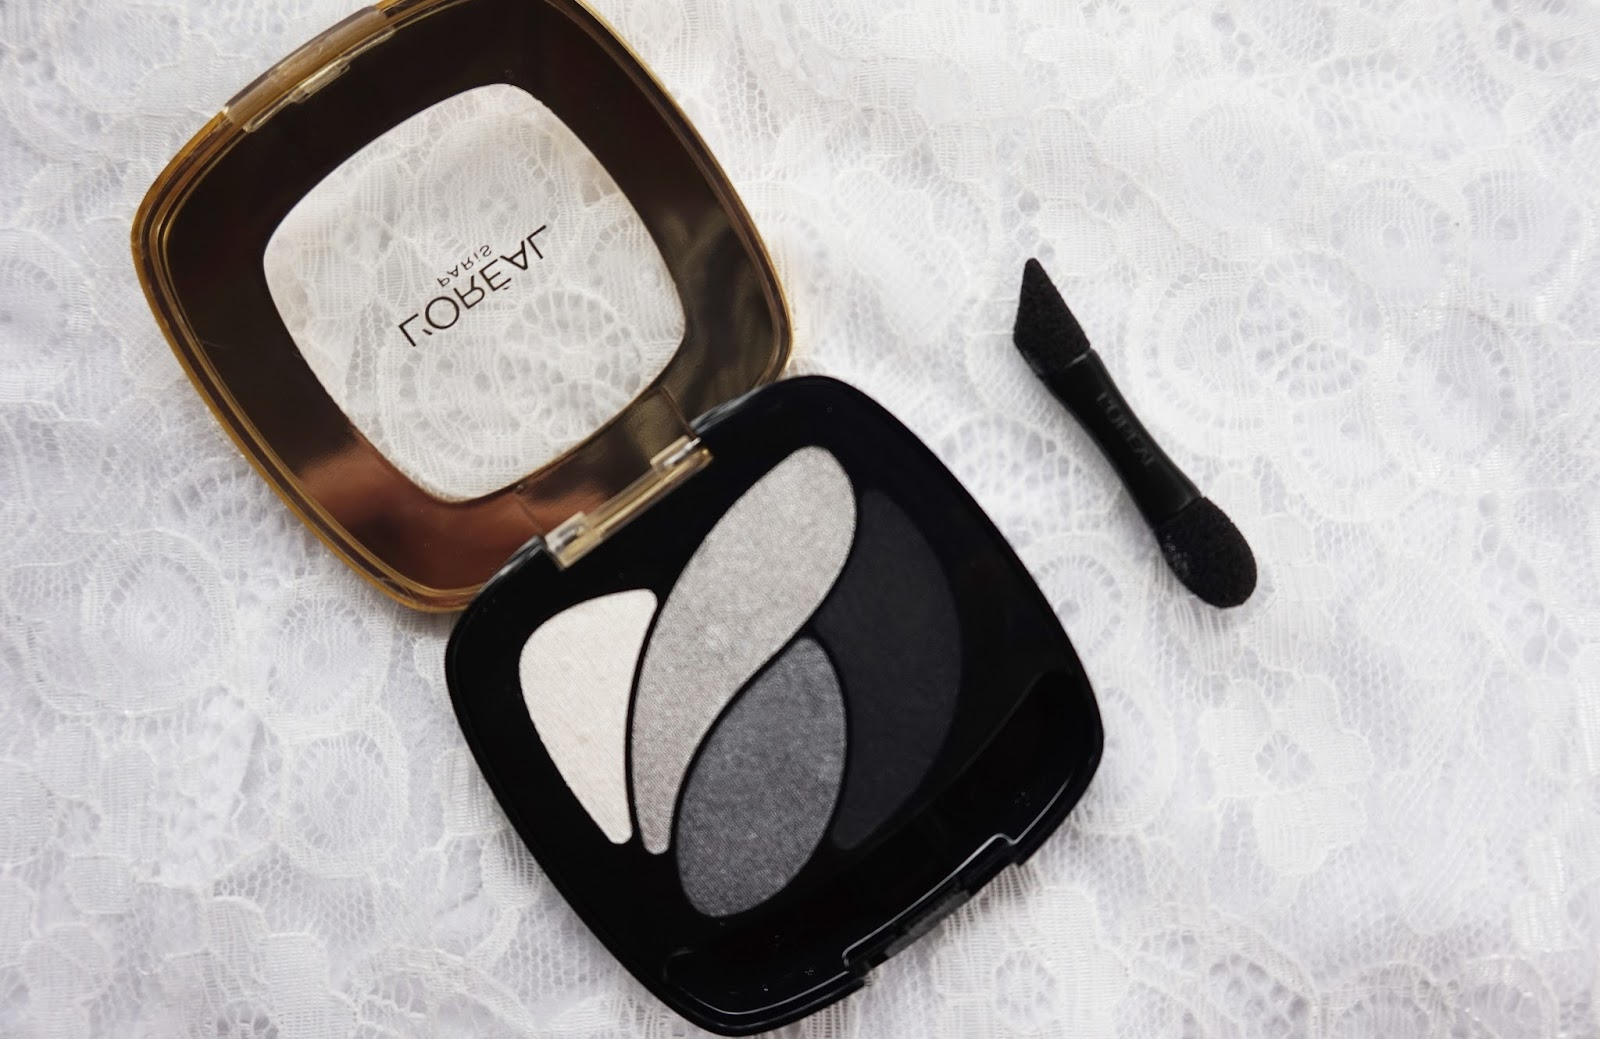 L'oreal Color Riche Les Ombres Eyeshadow in Velours Noir Review + Swatch